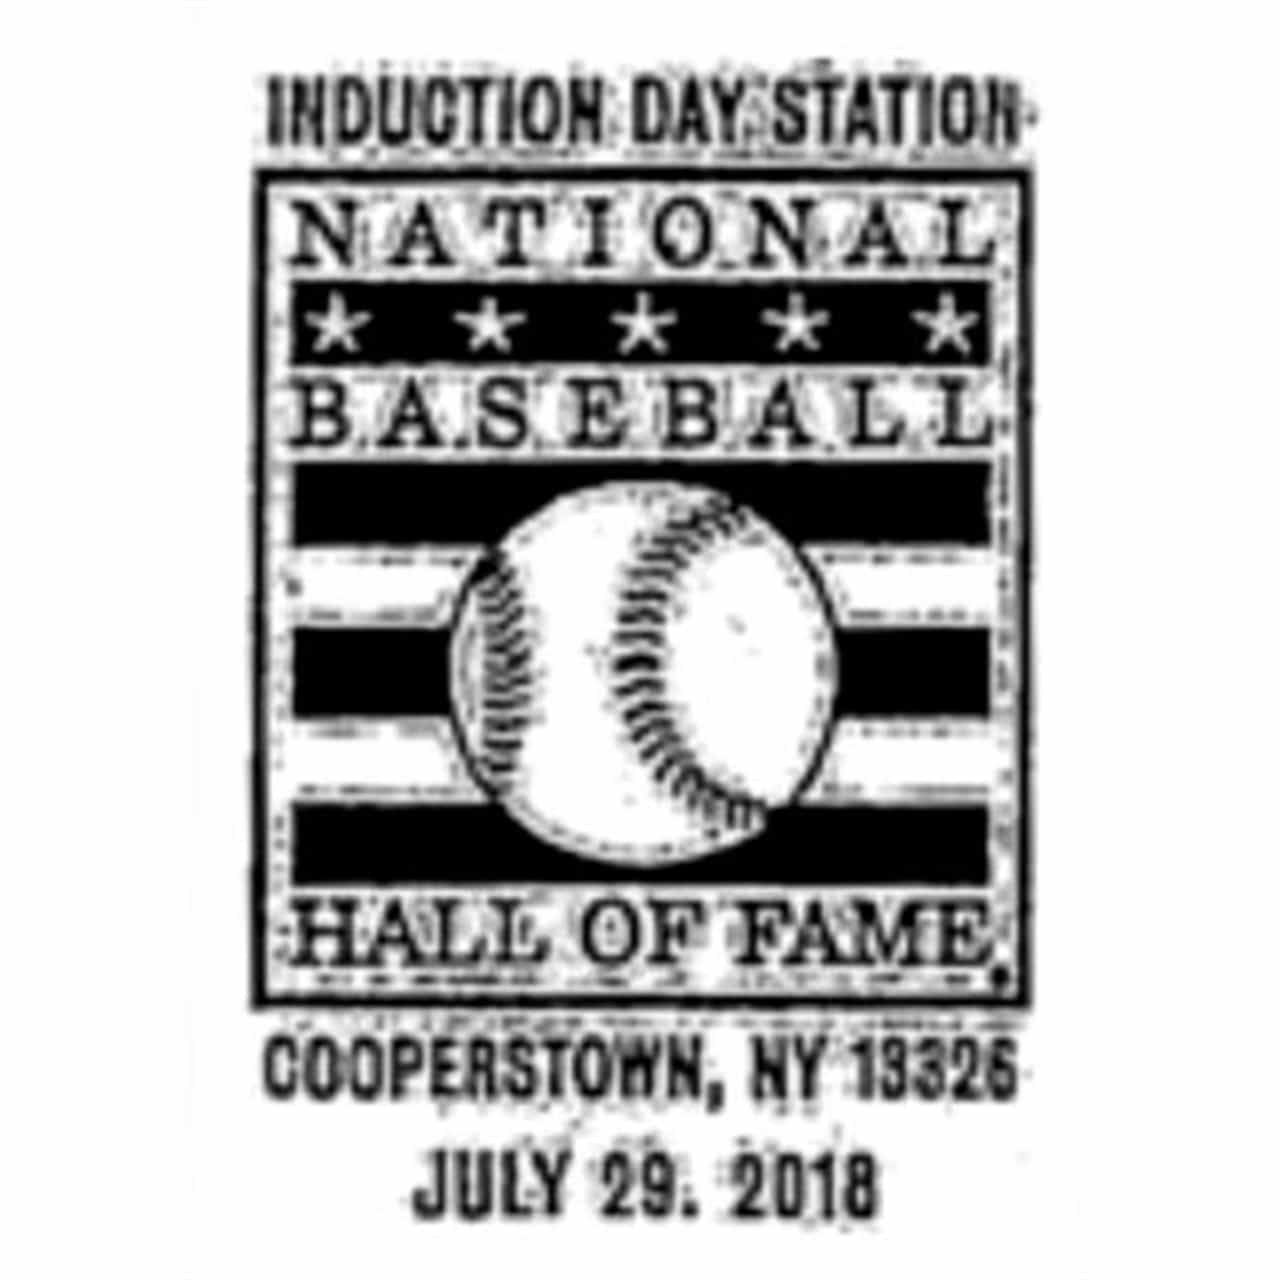 2018 Baseball Hall of Fame Pictorial Postmark & Celebrating AnchoredScraps 1250th Daily Blog Post Milestone Today